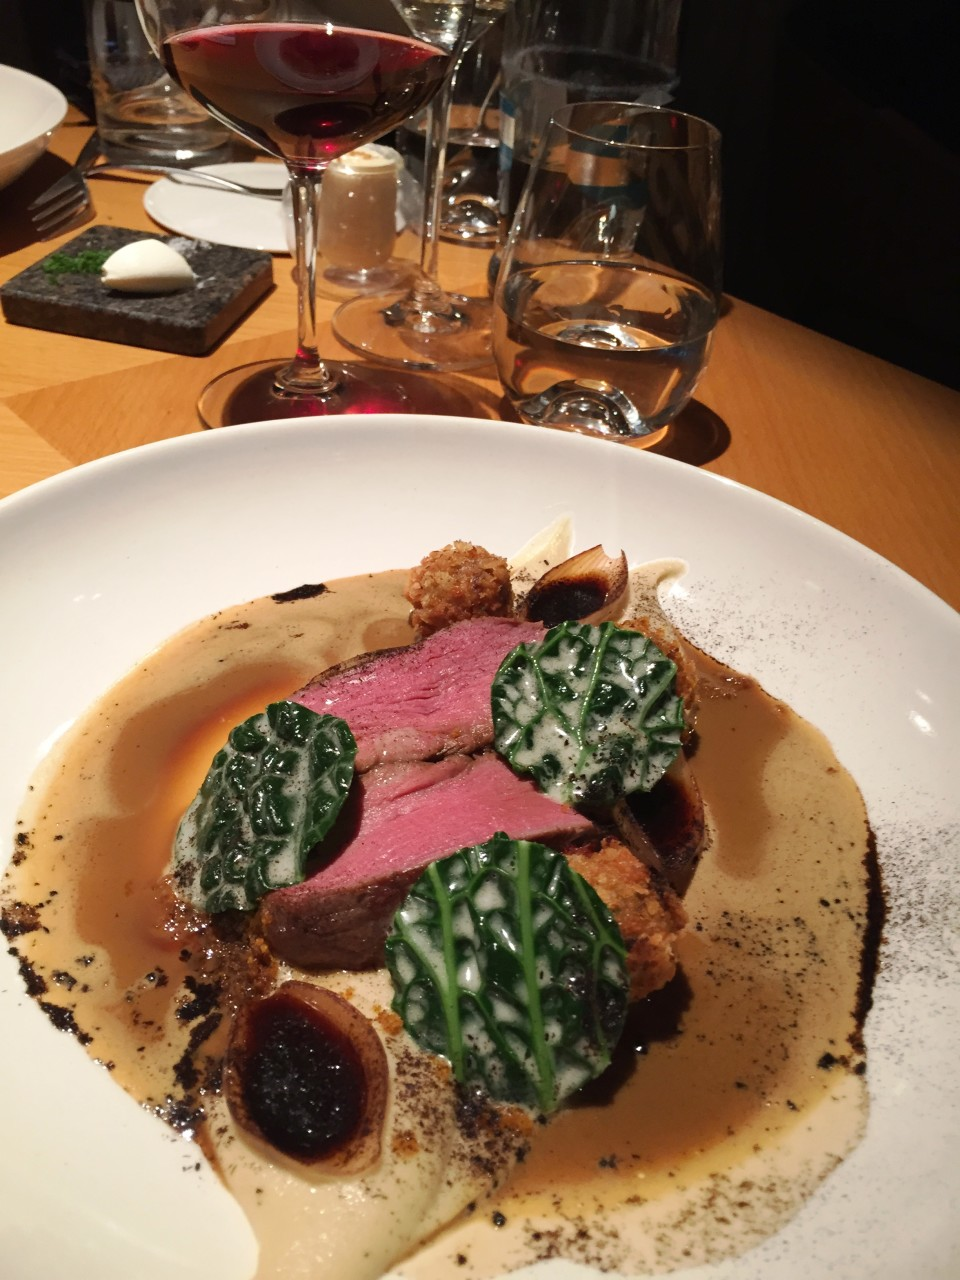 Field Restaurant in Prague : Main course of Veal, marrrow, shallots, kale